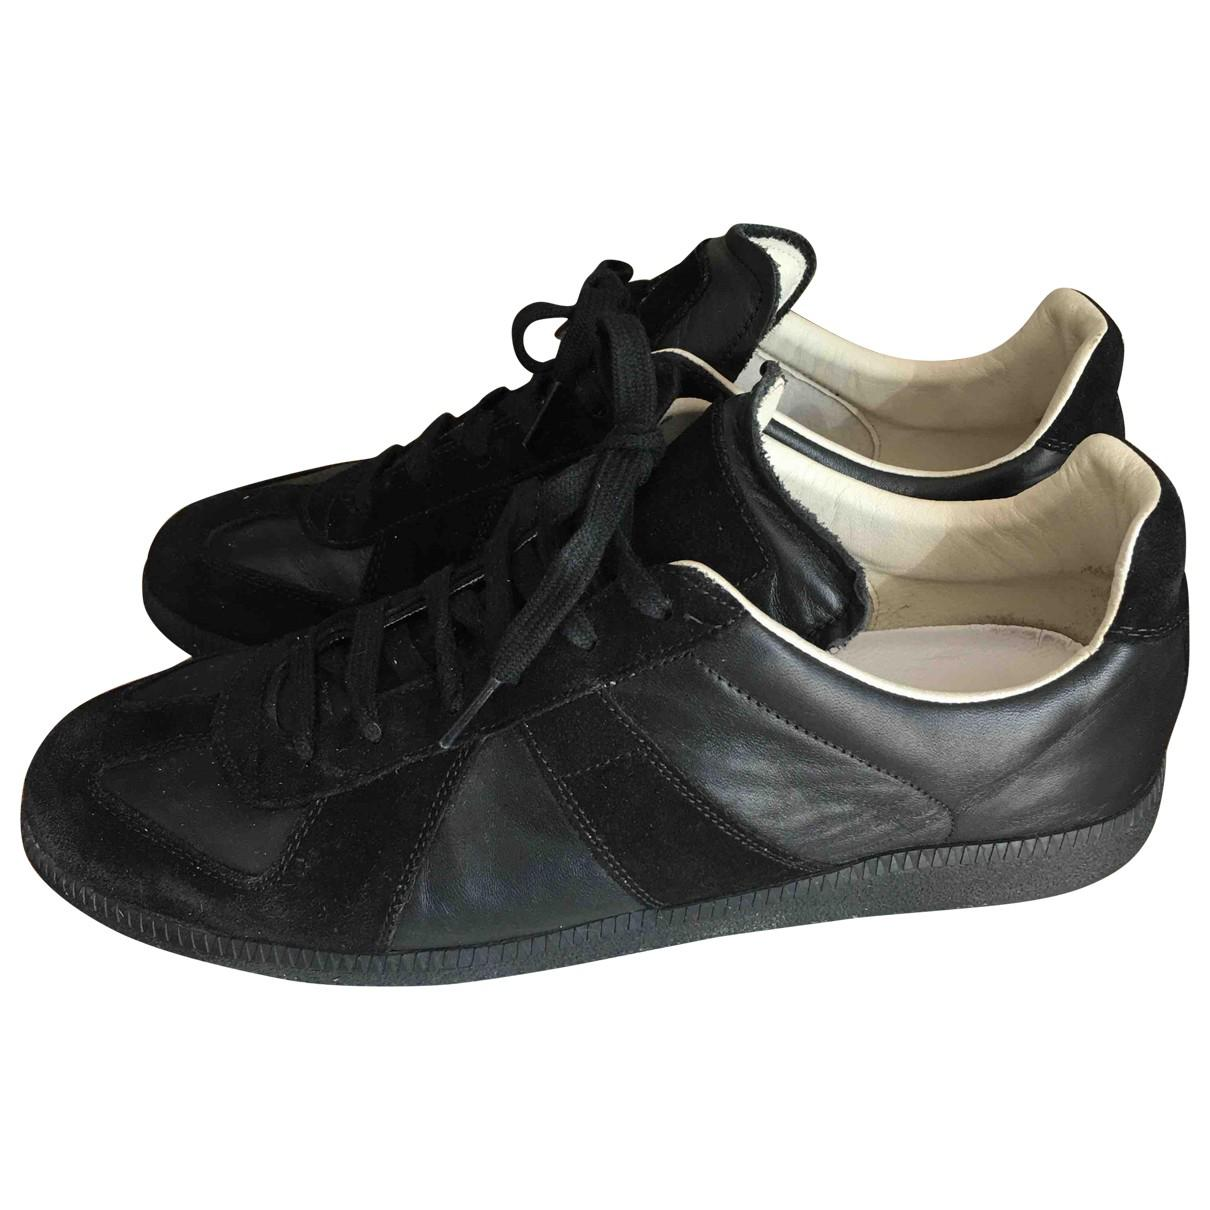 Pre-owned - Leather low trainers Maison Martin Margiela G8kHExcDXQ